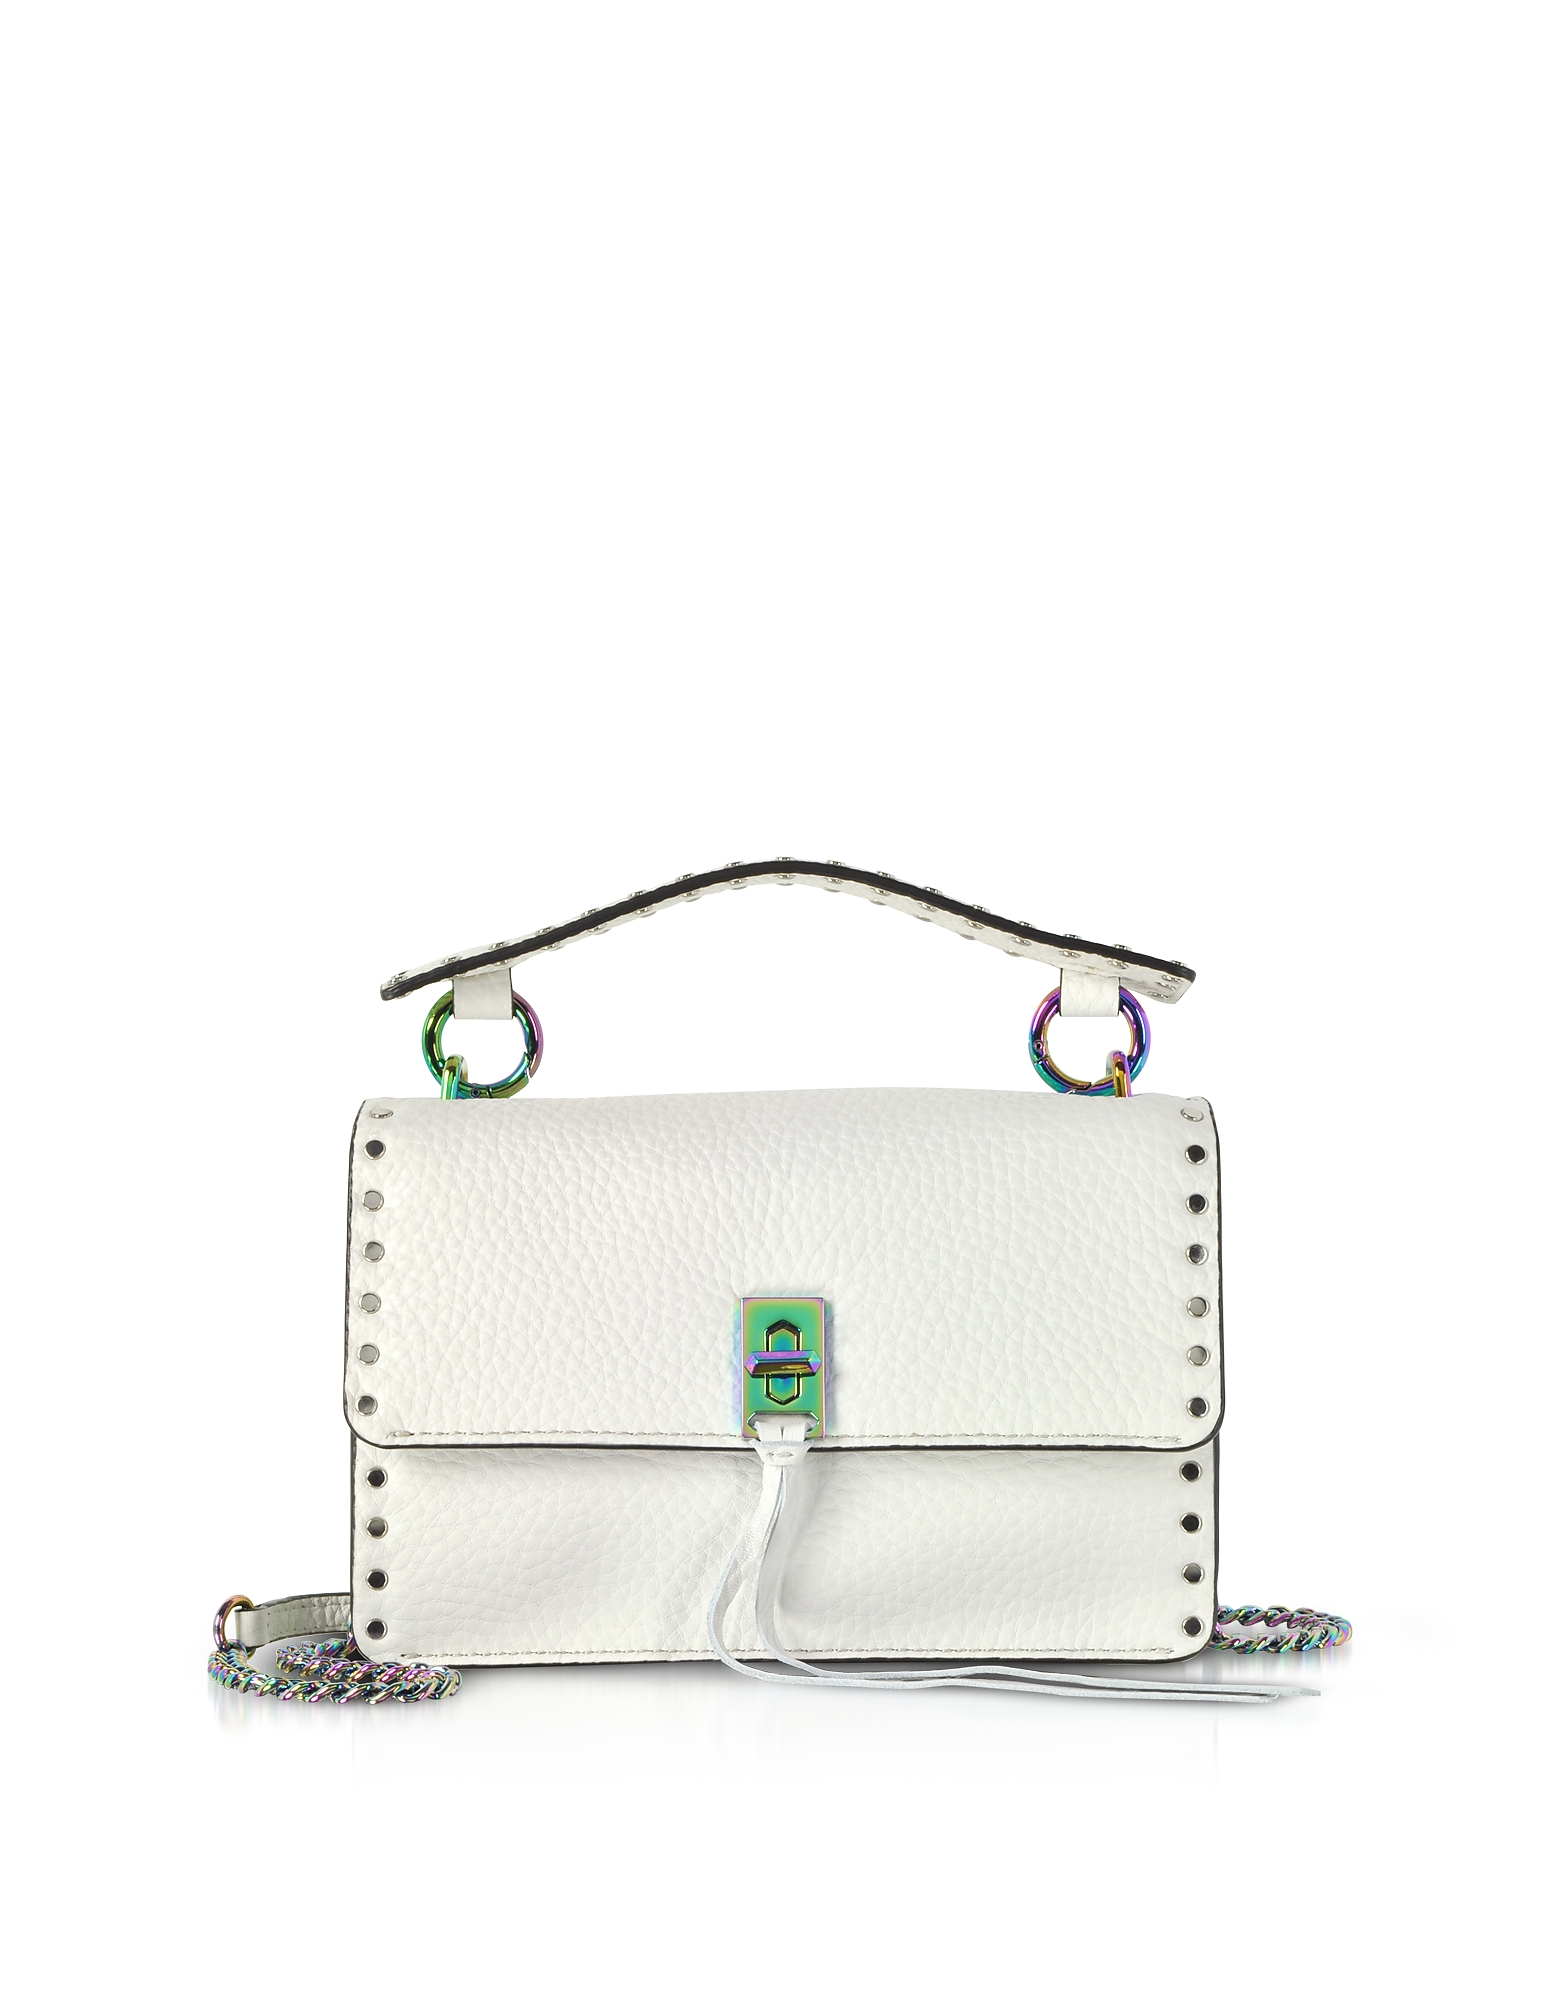 Rebecca Minkoff Handbags, Bianco Leather Darren Top Handle Flap Crossbody